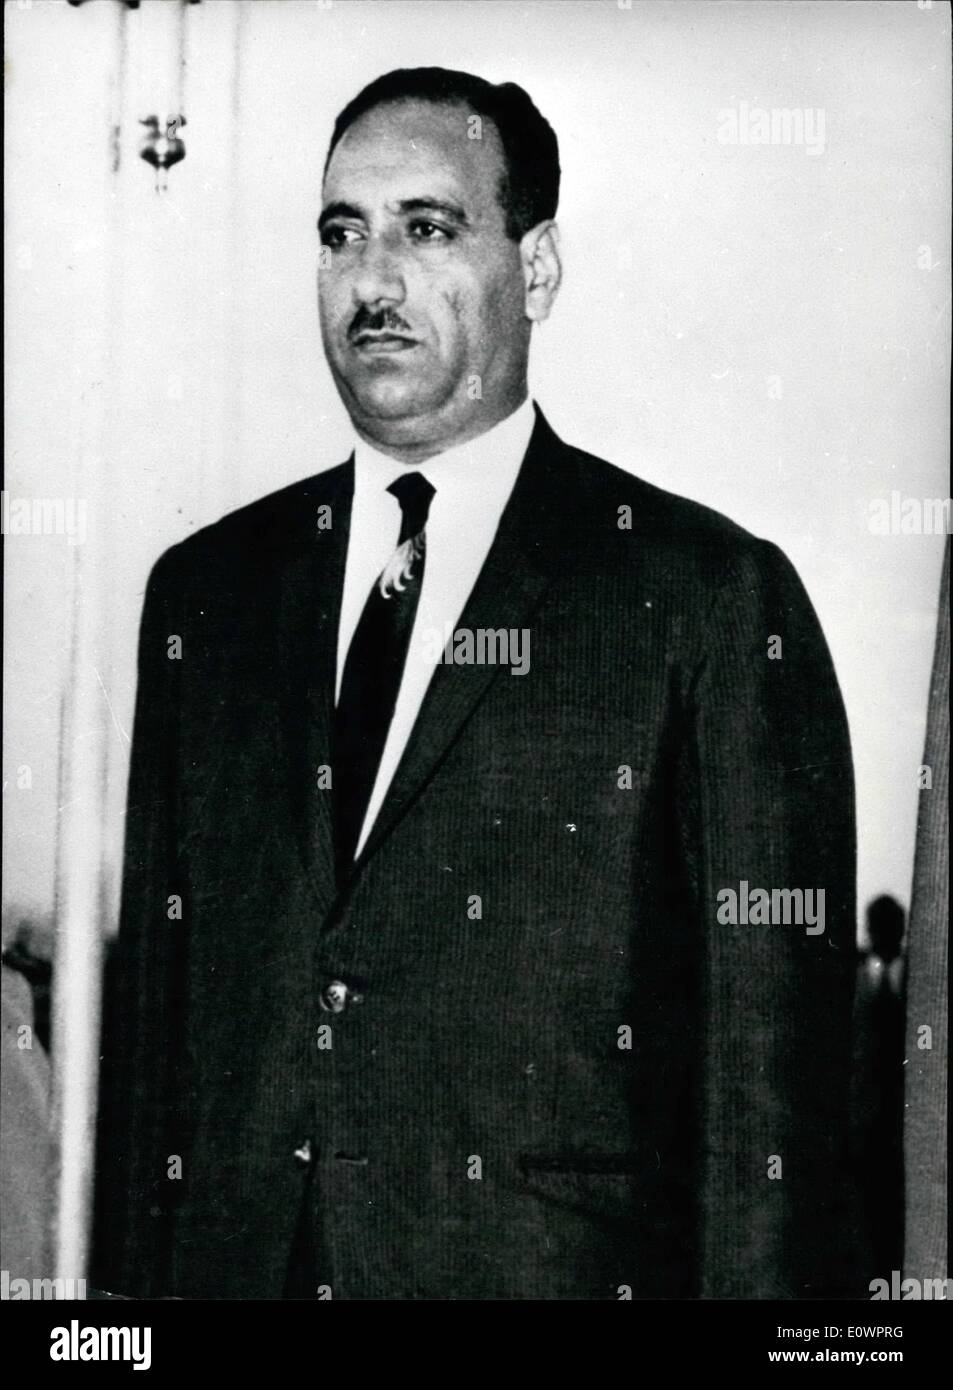 Nov. 11, 1963 - Another Coup in Irak Field Marshal Abdul Salam Aref, the ''figurehead'' president of Irak, seized power today, when he took over in the name of the army. He broadcast a proclamation ordering the armed forces to control the capital of Baghdad and crush any resistance. Photo Shows: A stock portrait of Field Marshal Abdul Salam Aref. - Stock Image